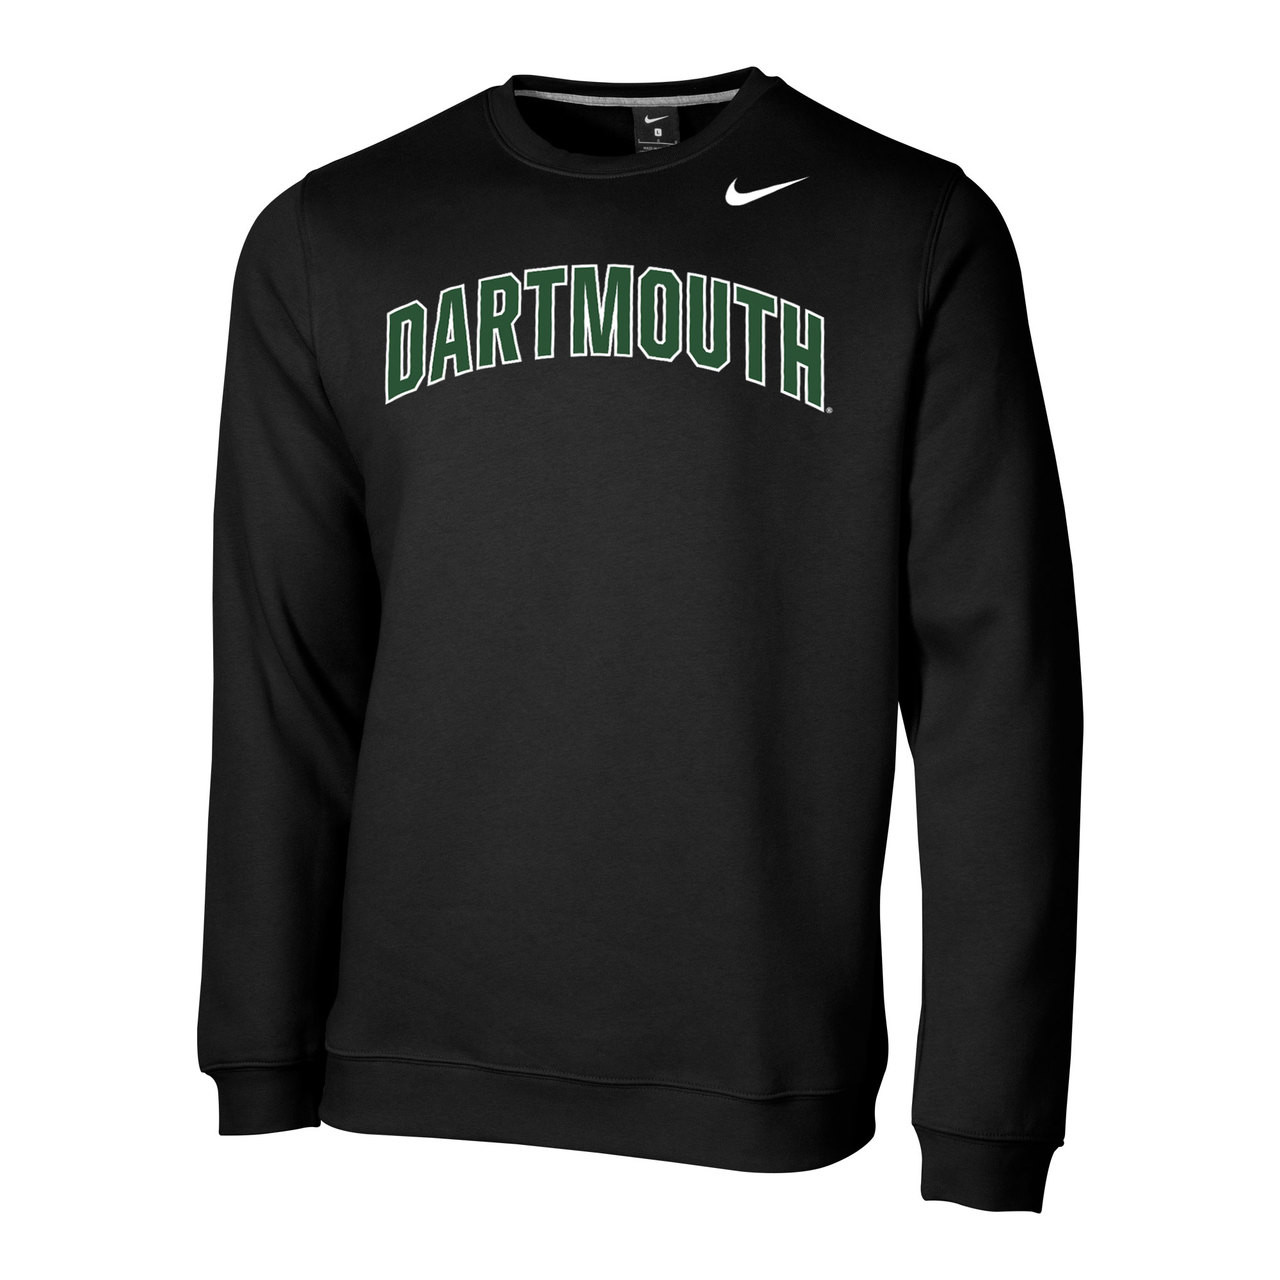 9e4bc1779375 Men s Nike black crew neck sweatshirt with  Dartmouth  across chest in  green and Nike